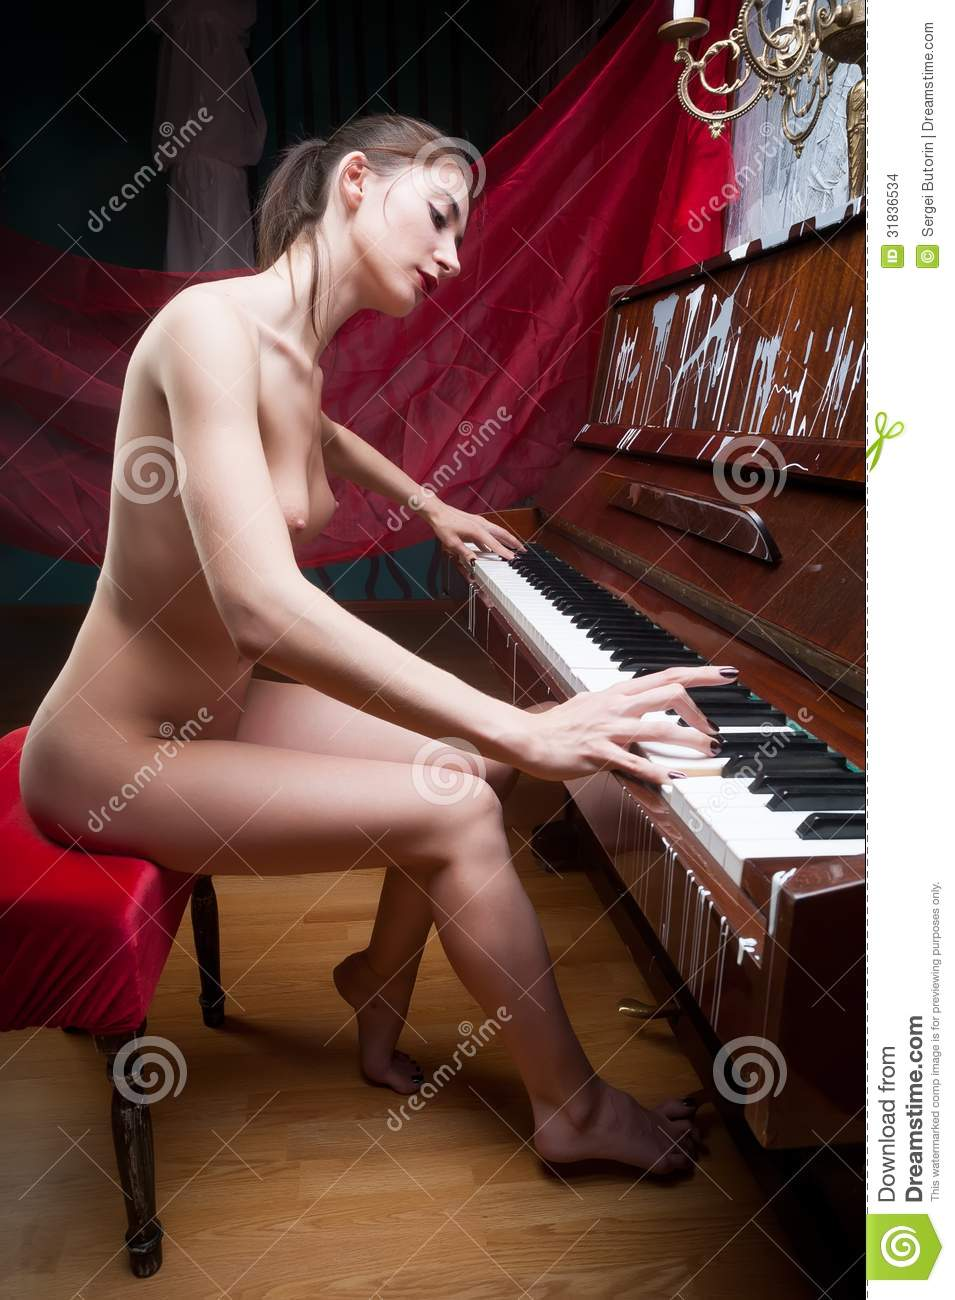 Little girl nude playing piano was specially